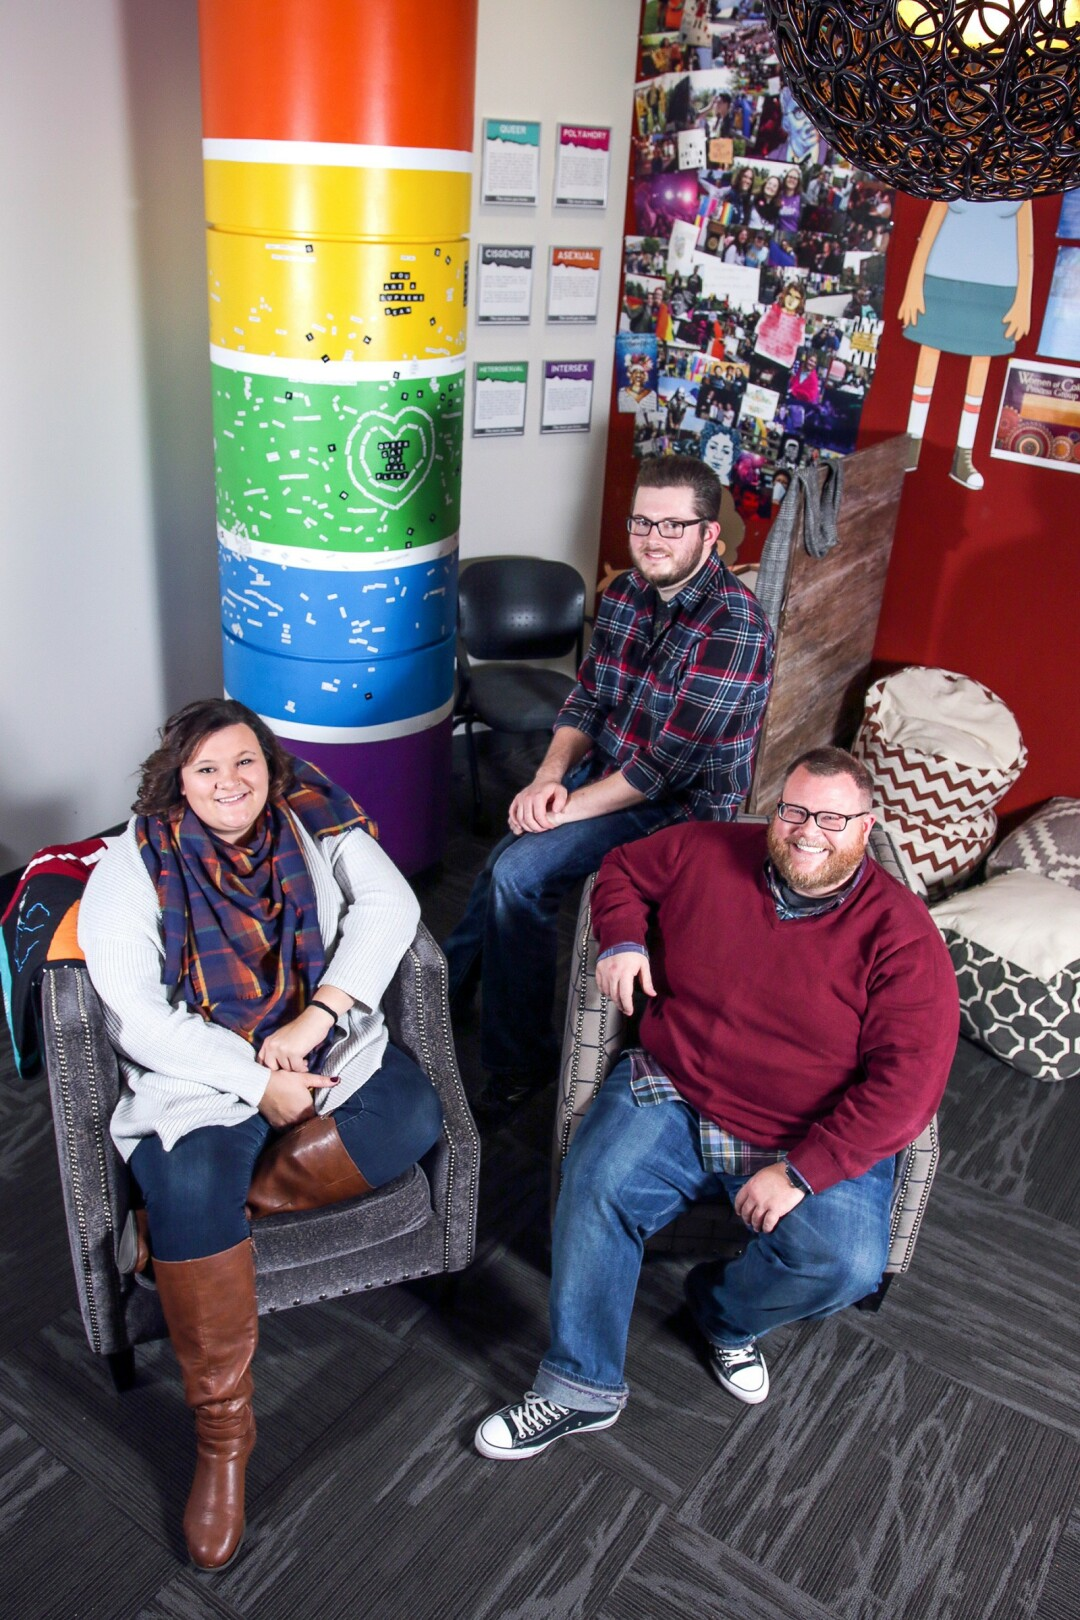 (Left to Right) Graduate Assistant Kallie Friede, Student Intern Jacob Noren, and GSRC Director Chris Jorgenson.